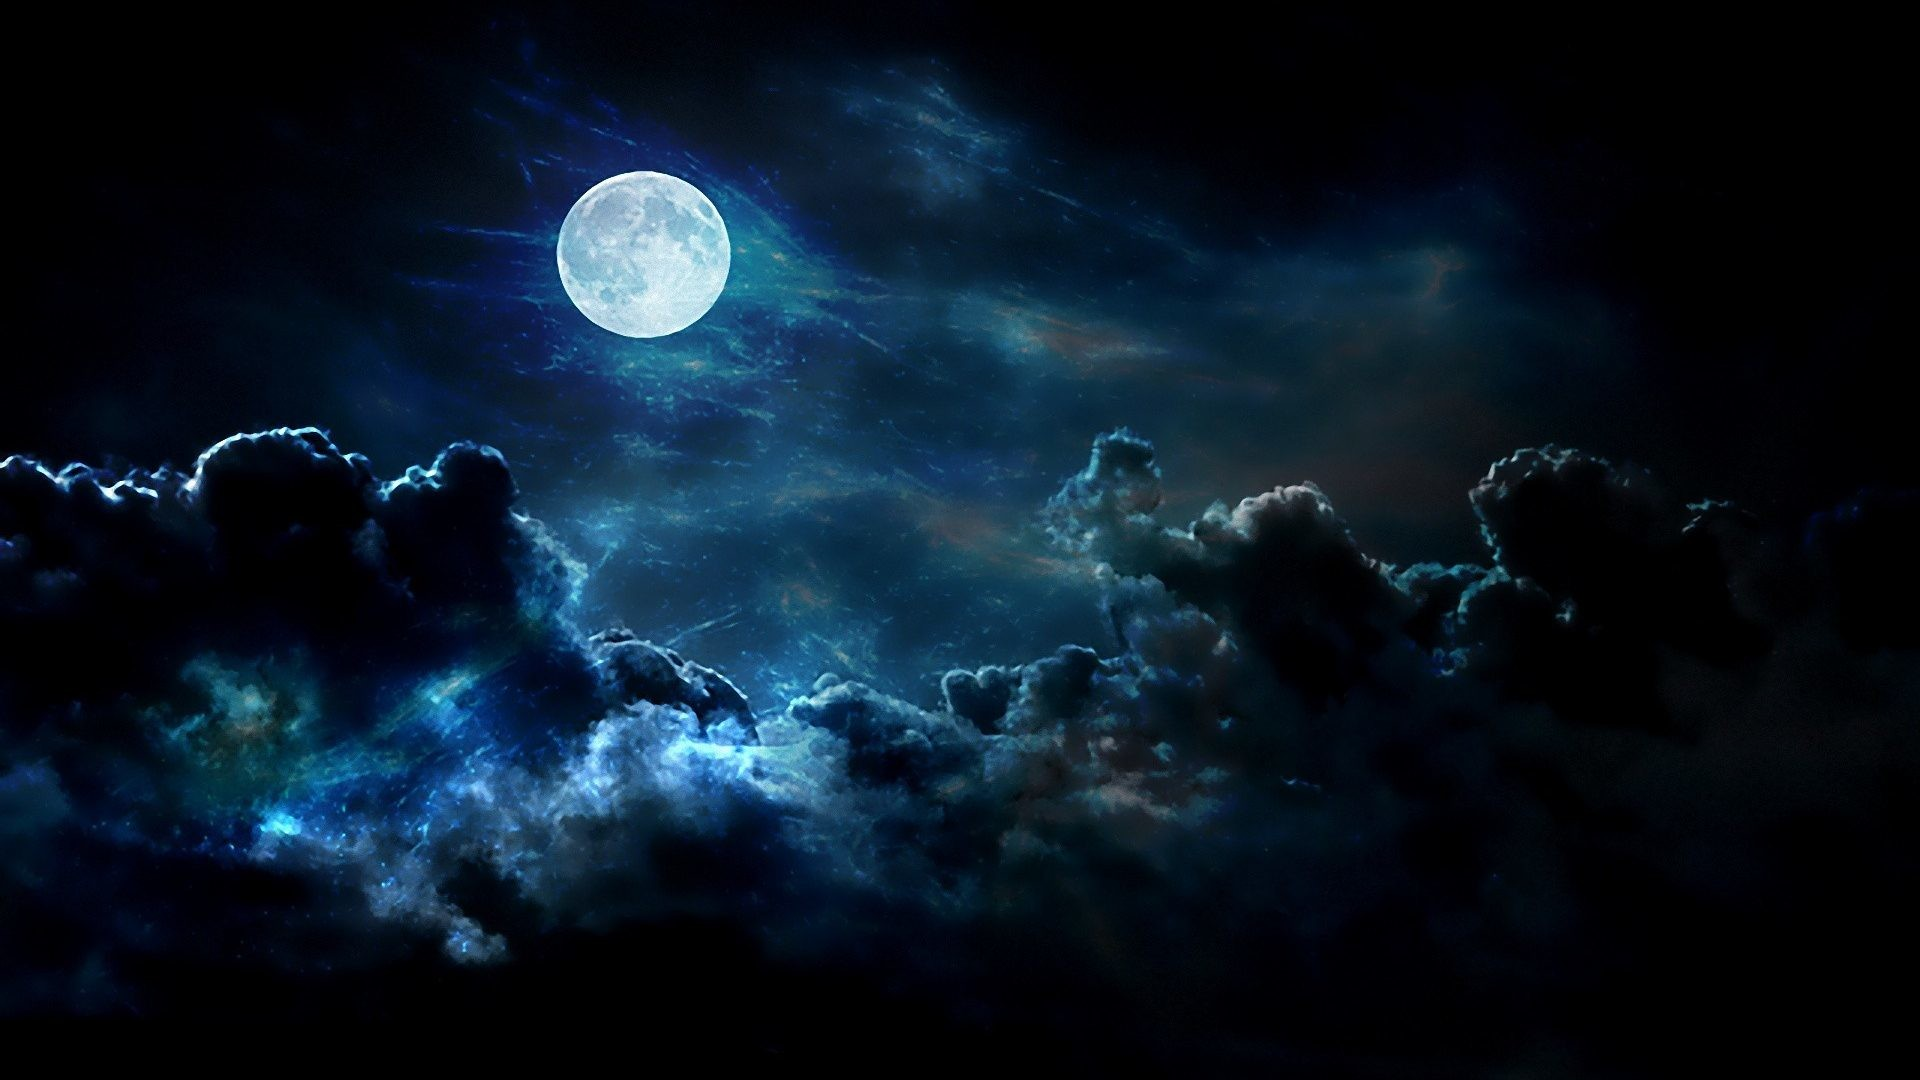 1920x1080 BIG BLUE Clouds Nature Night Moon SKIES FULL Wallpaper Background Free